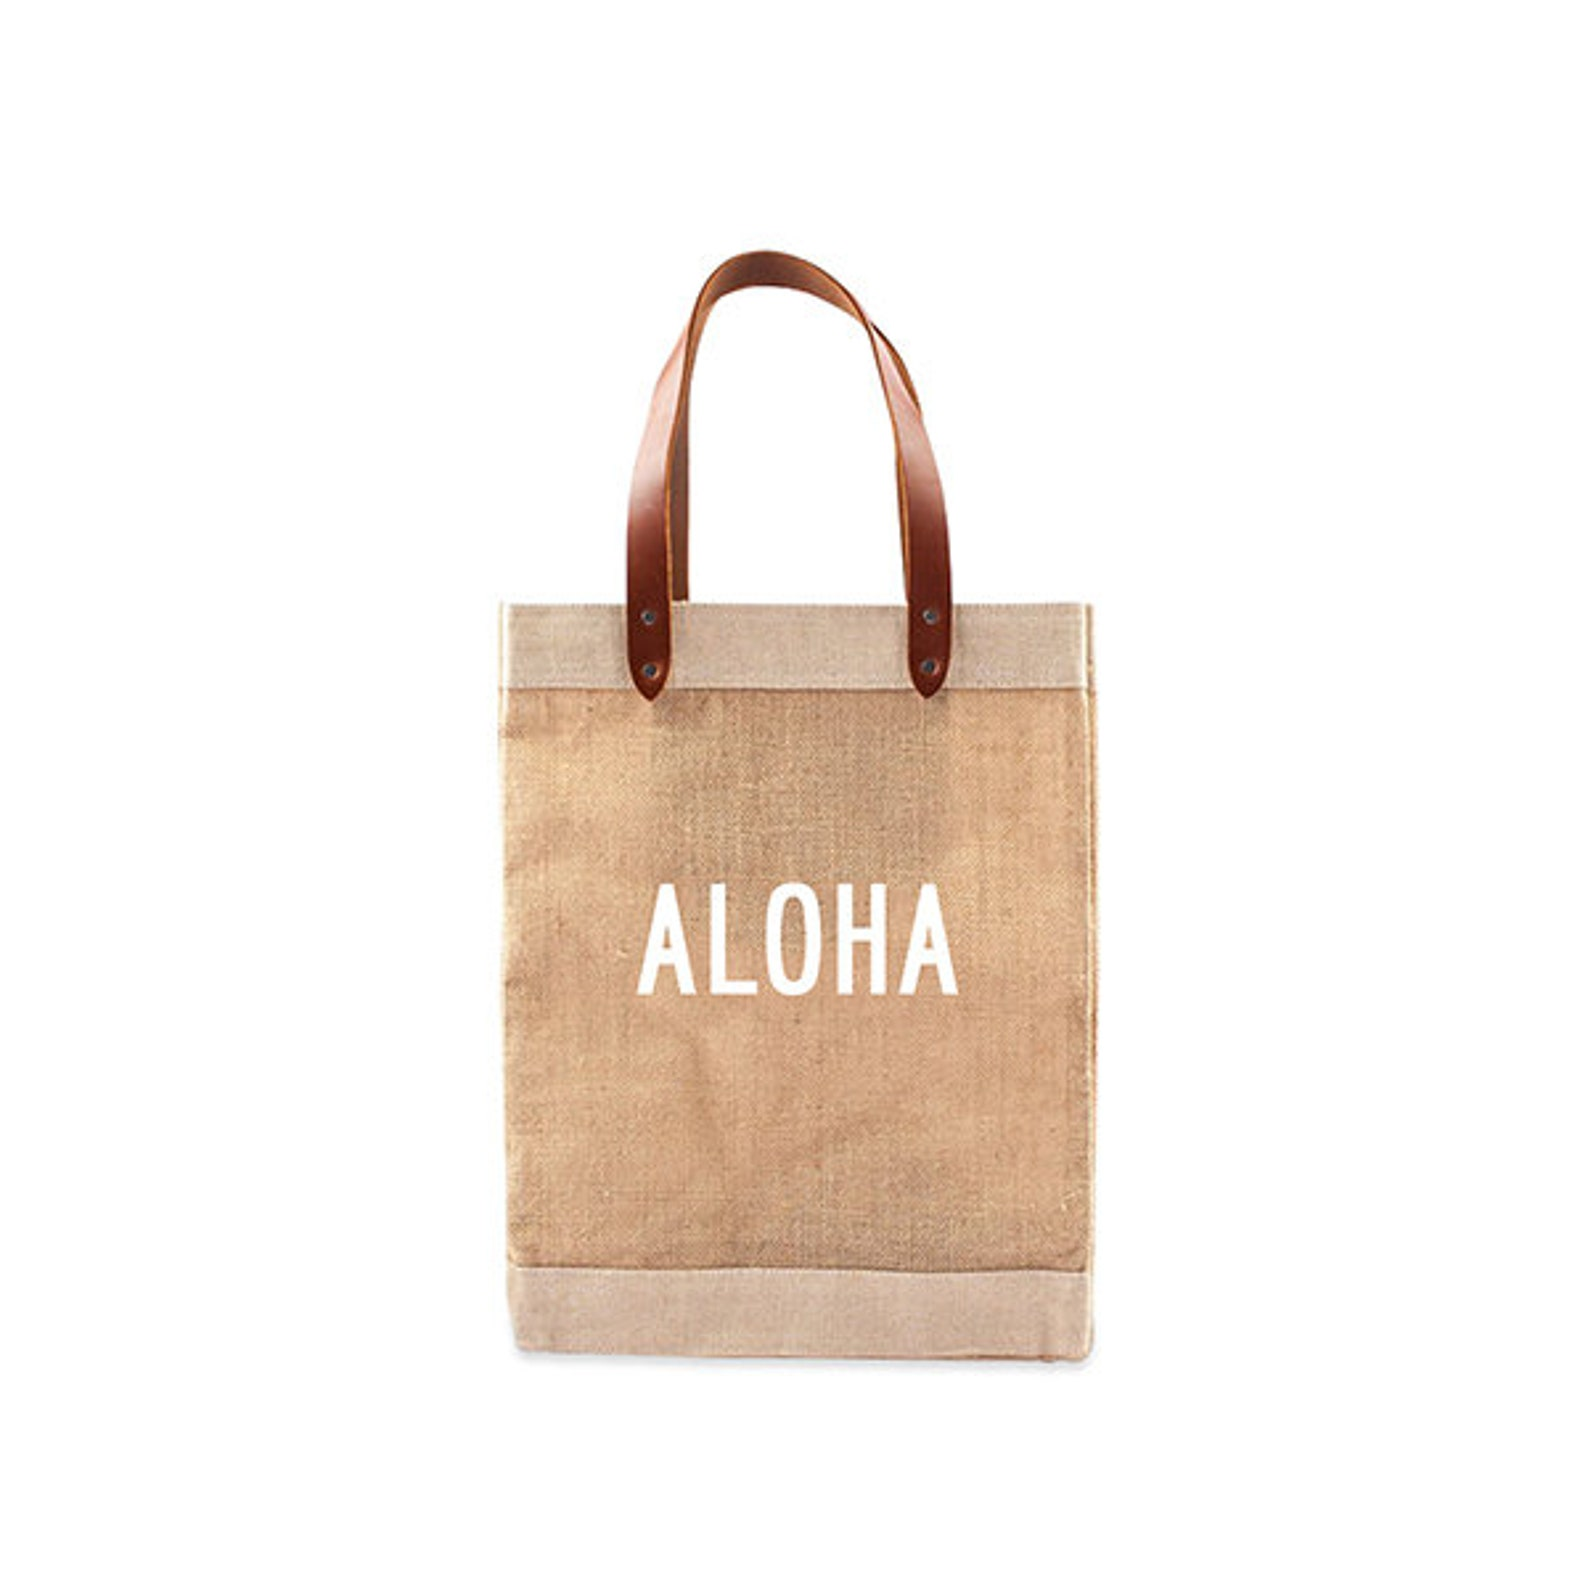 Brown shopping bag with white Aloha lettering, perfect for buying local groceries such as tropical fruit jams, tea and macadamia nuets